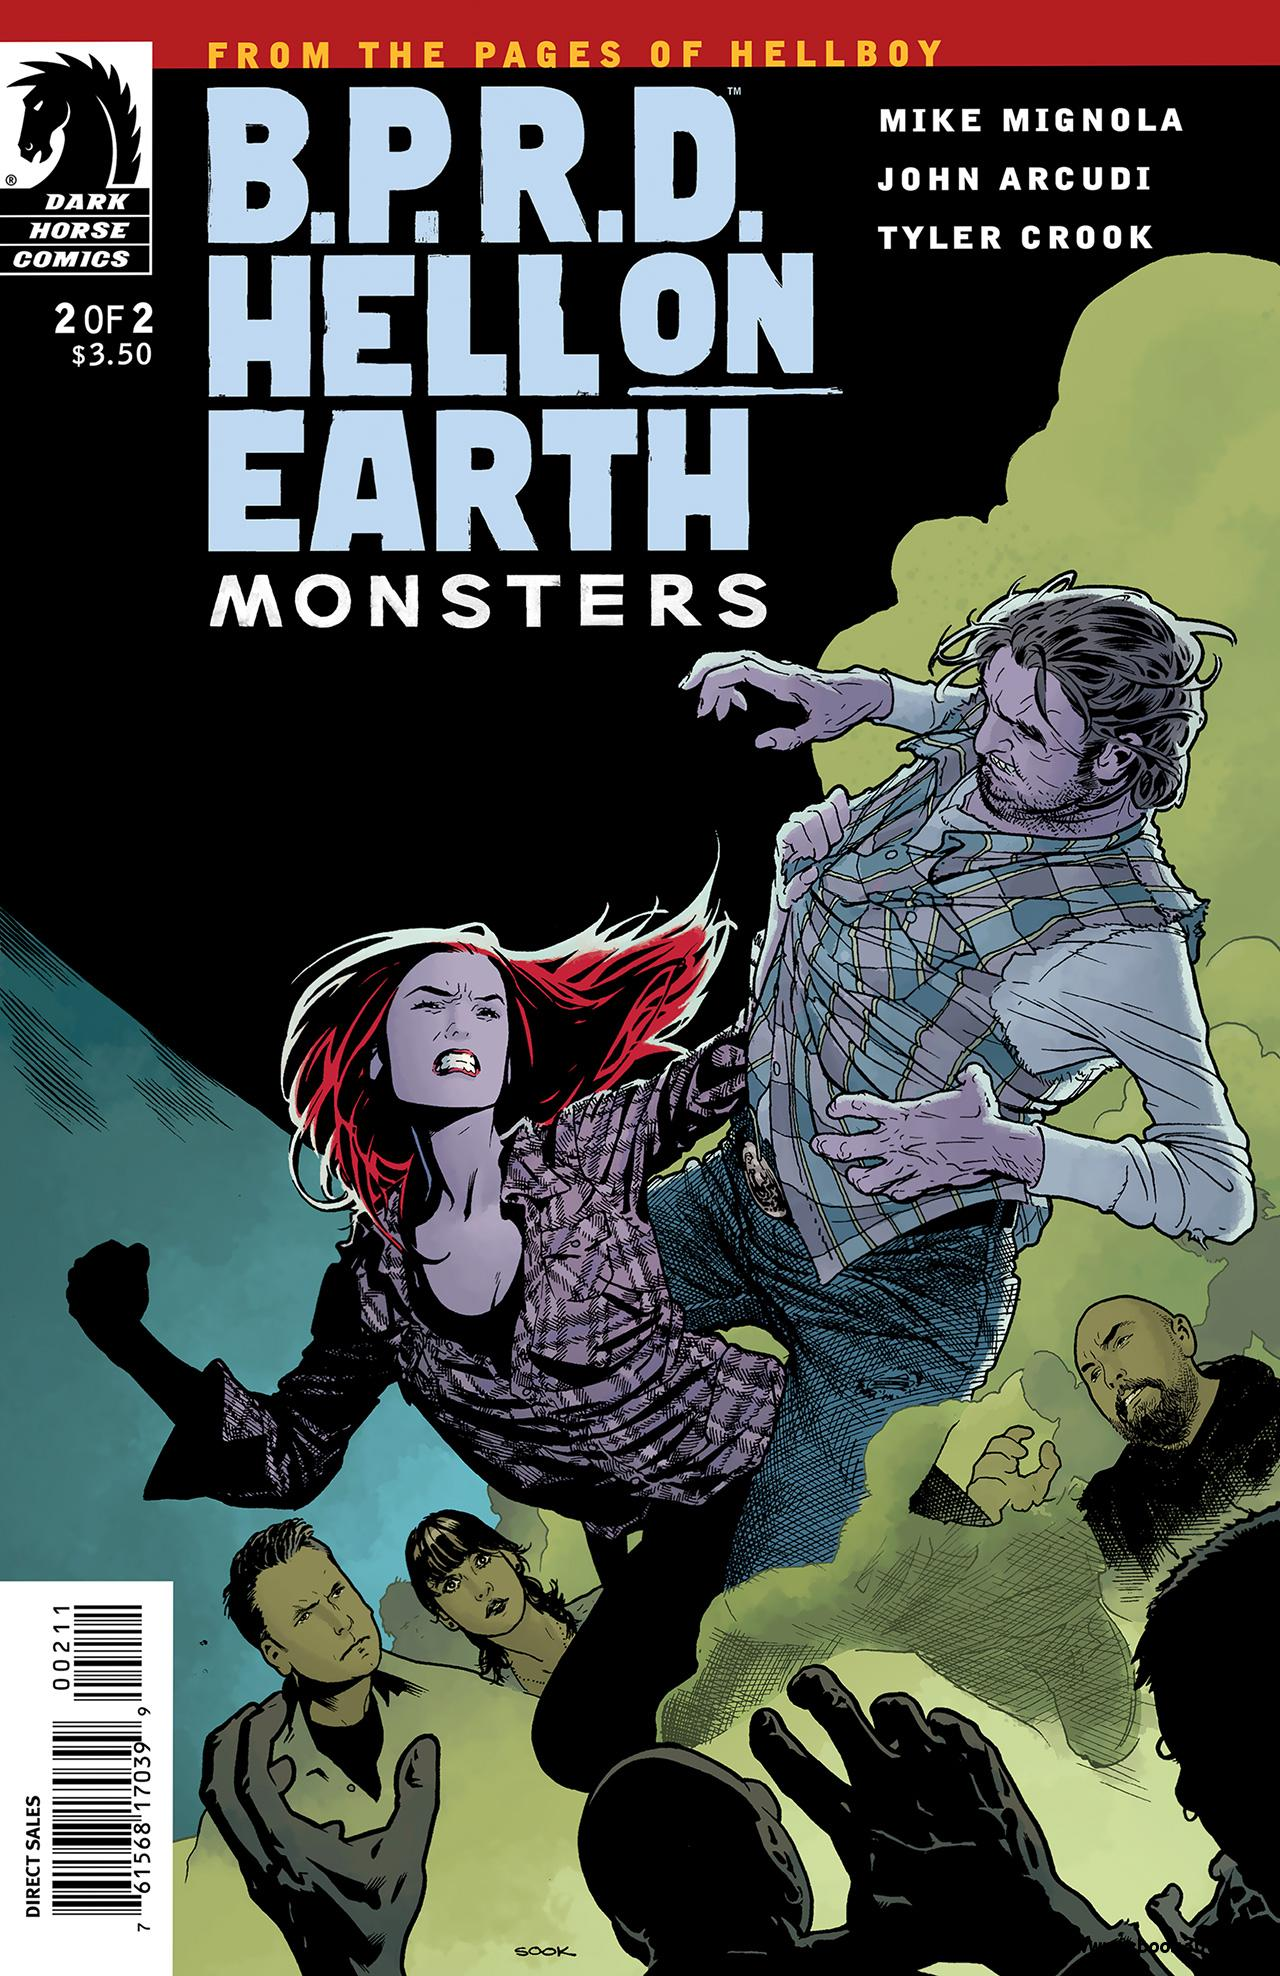 B.P.R.D. Hell on Earth - Monsters #2 (of 02) (2011) free download